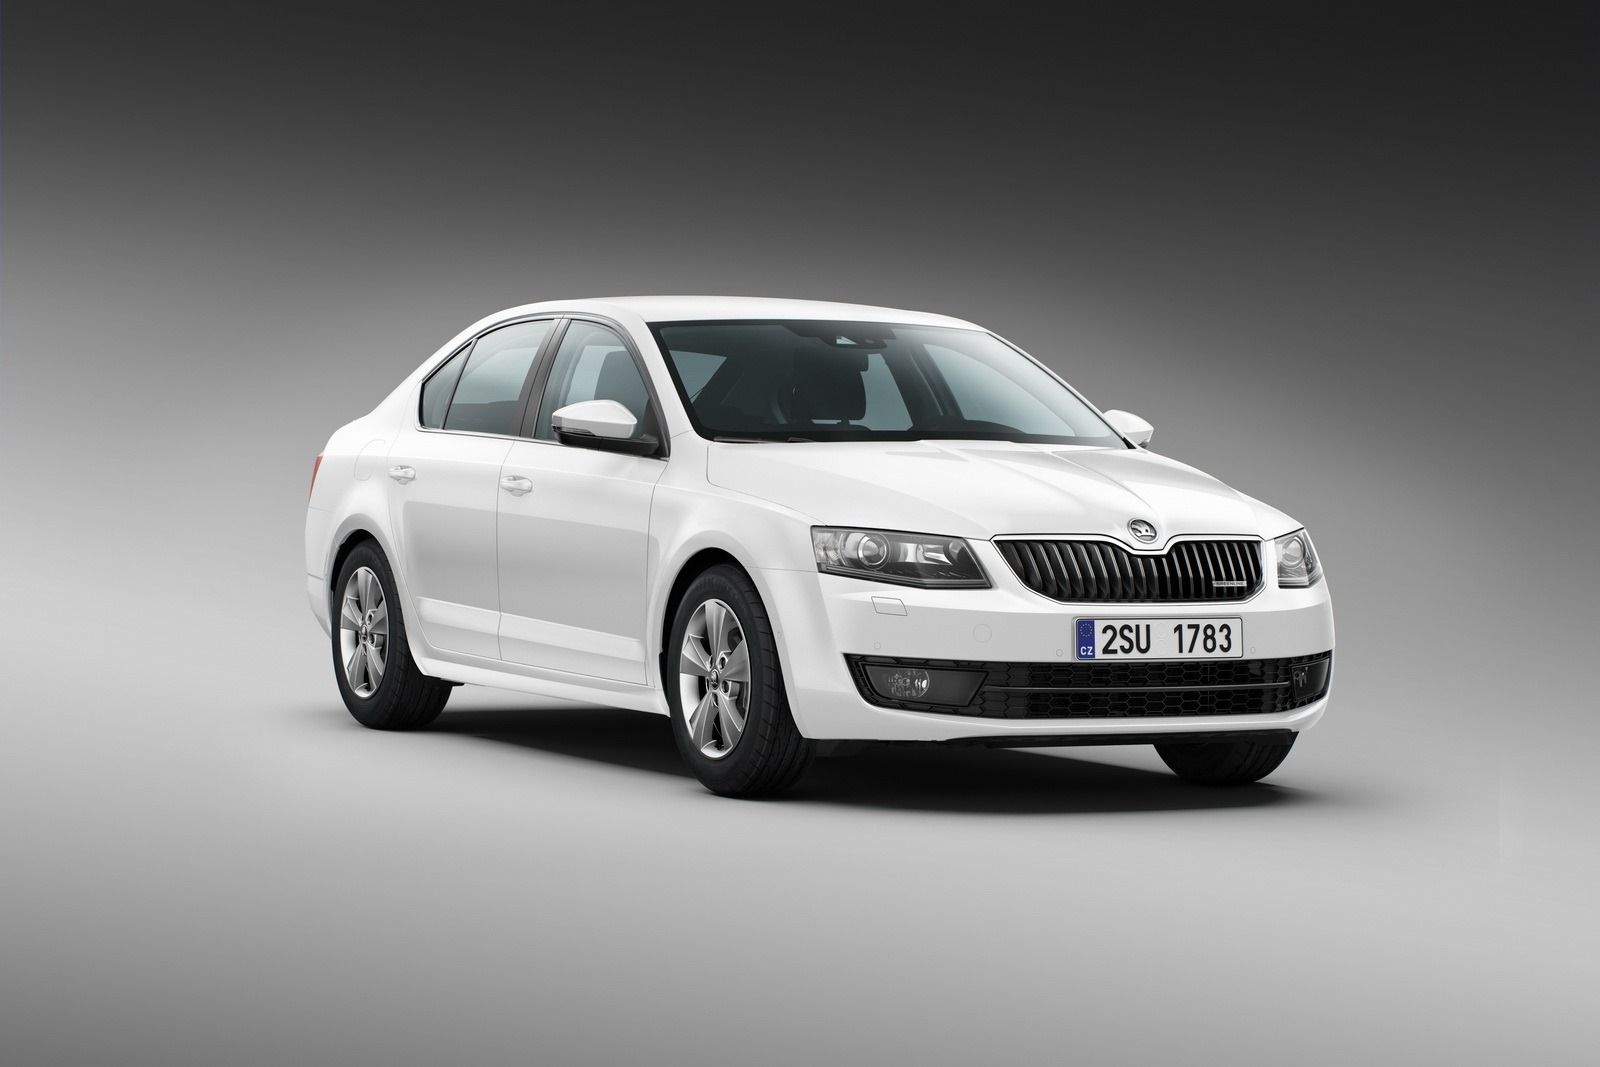 new skoda octavia greenline announced 3 3 l 100km and 87 g km autoevolution. Black Bedroom Furniture Sets. Home Design Ideas